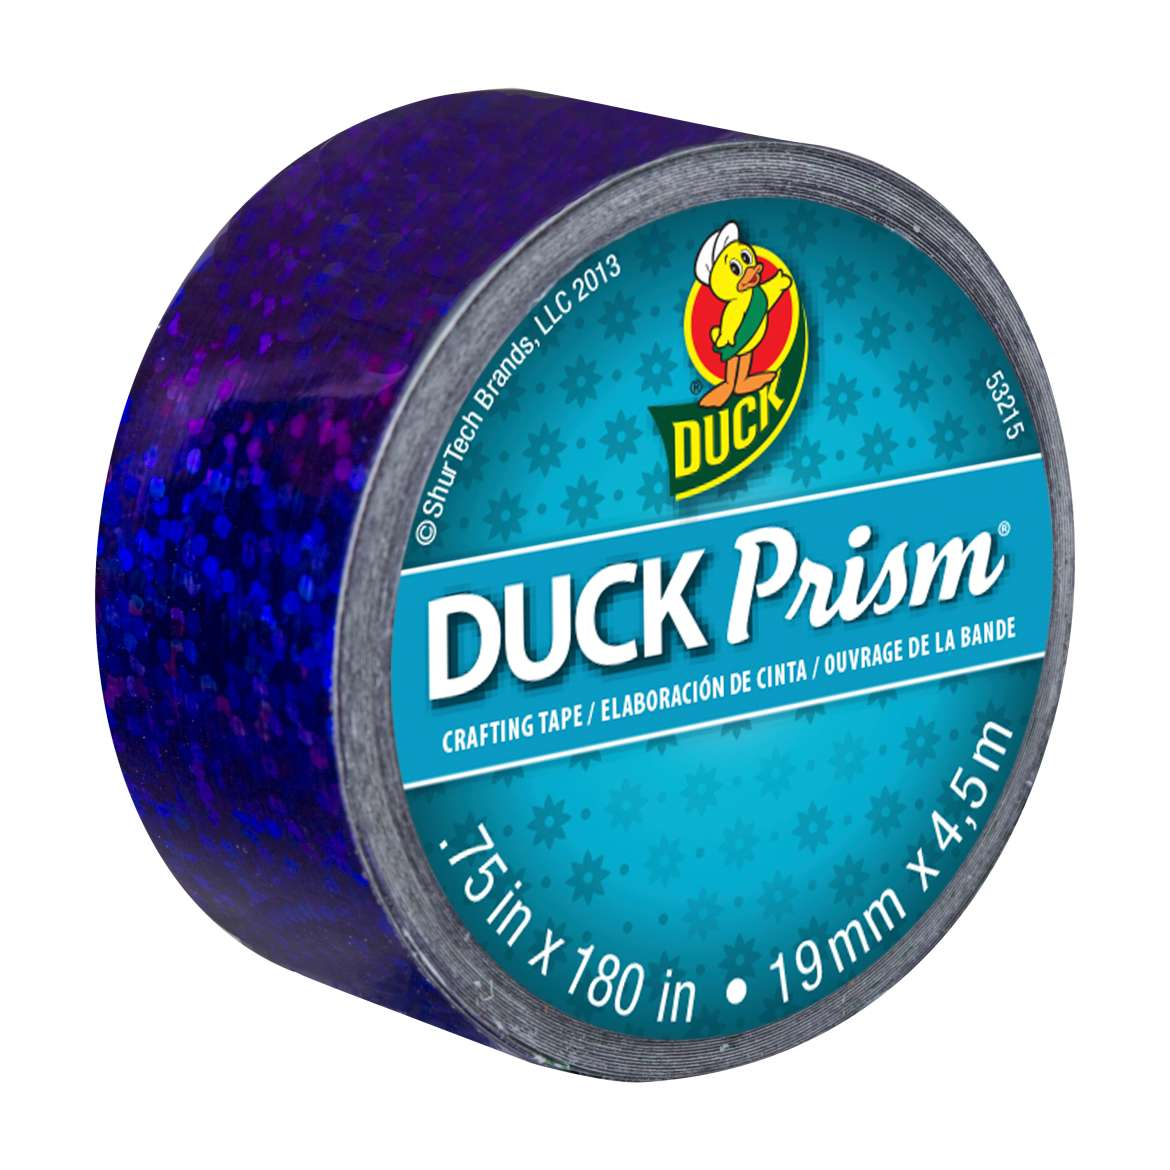 Ducklings® Prism® Crafting Tape - Lots of Dots Purple, .75 in. x 180 in. Image